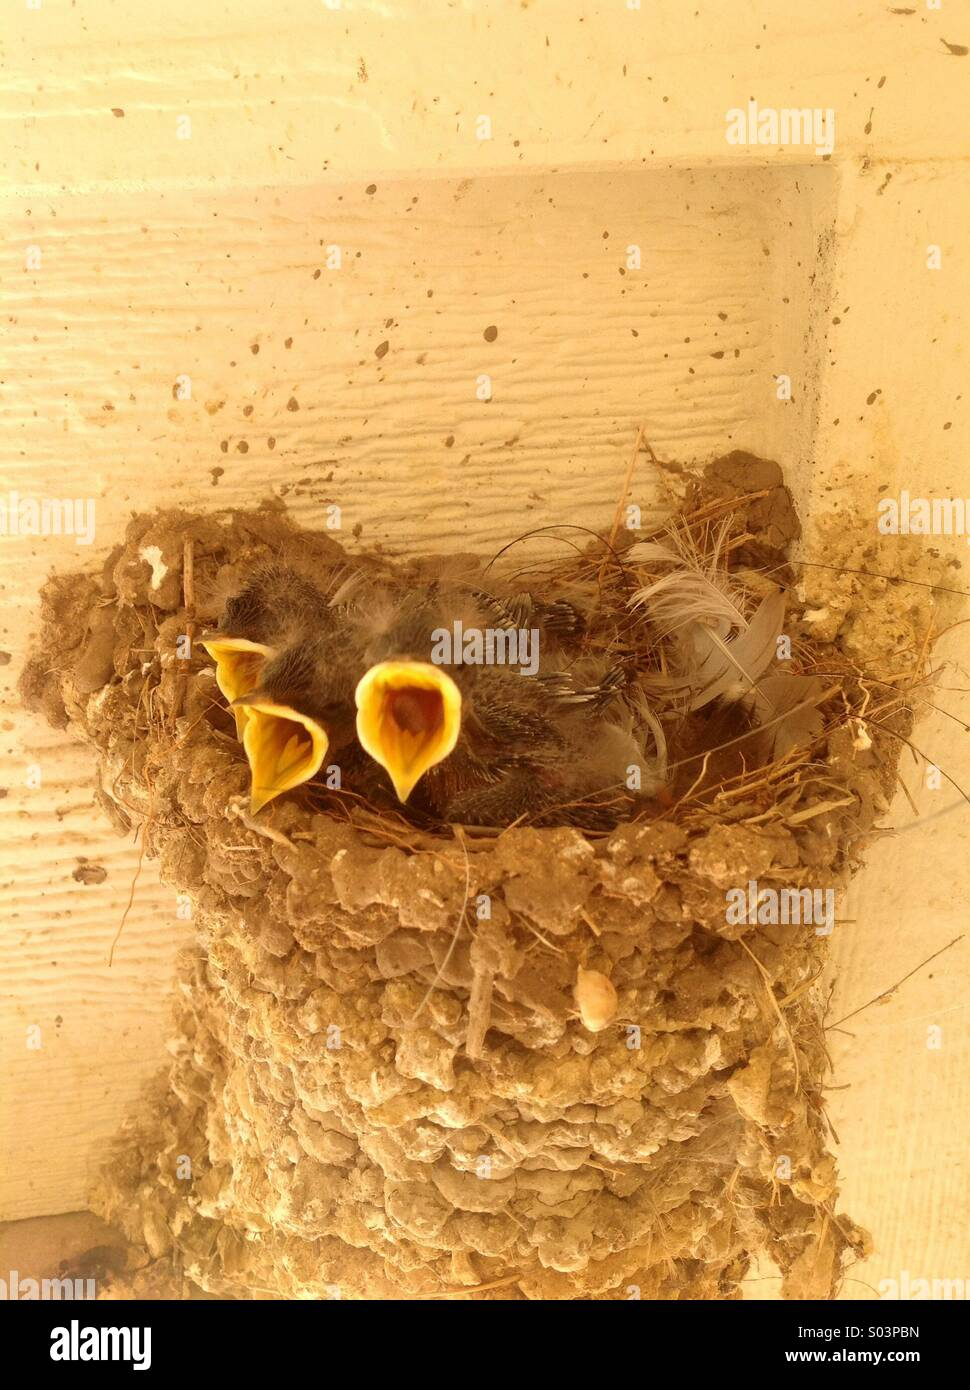 Baby swallows - Stock Image